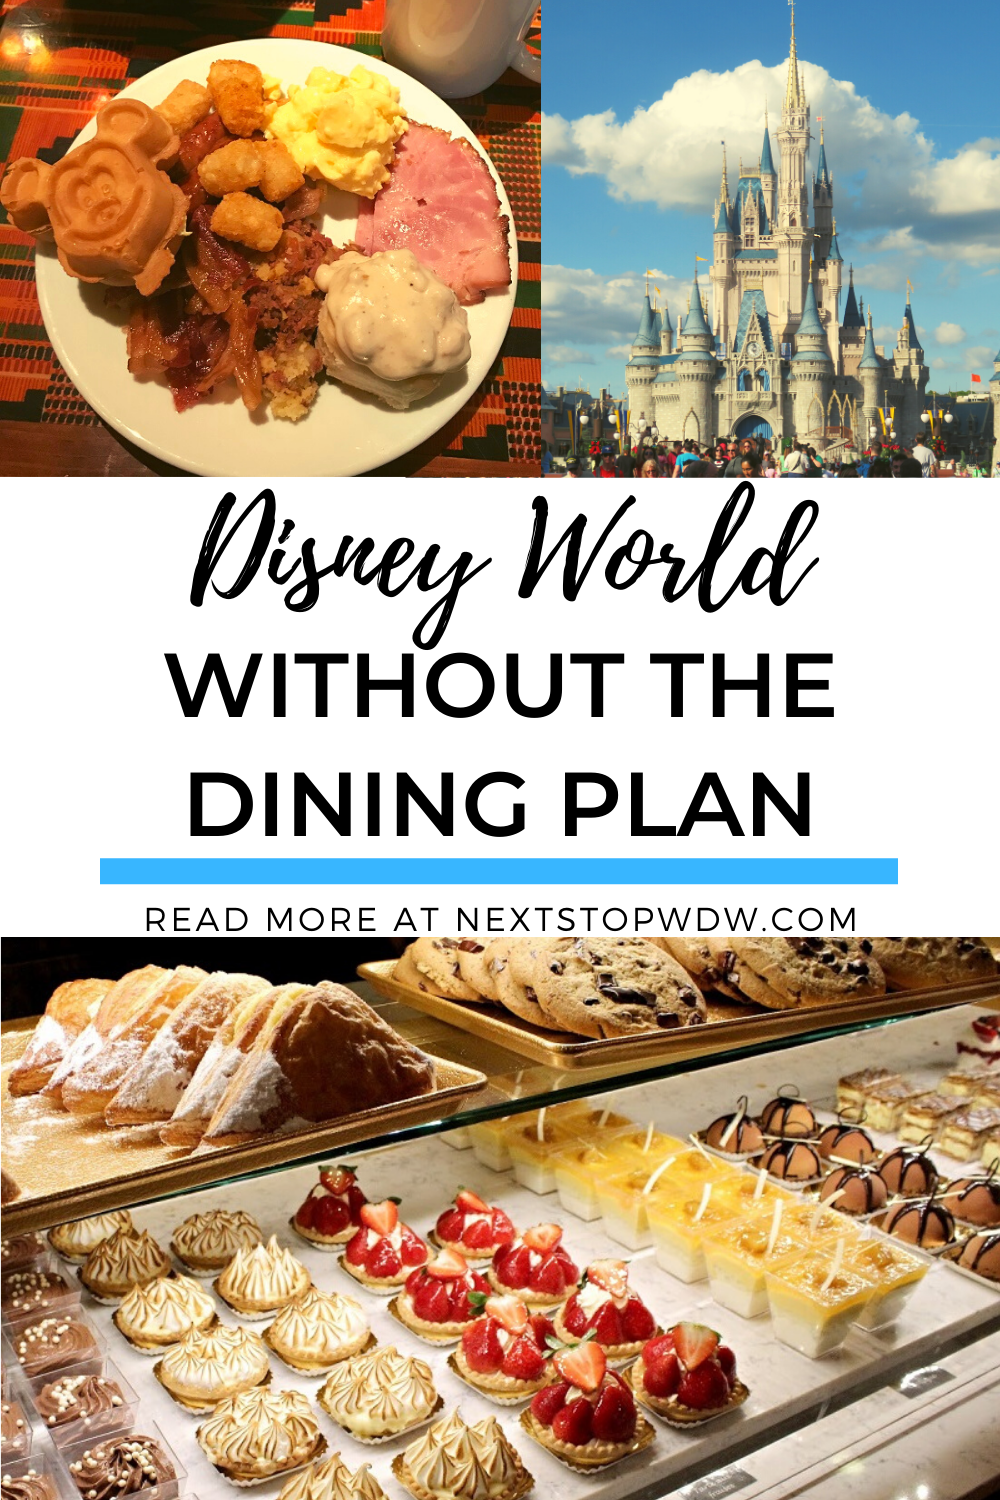 Disney World Without The Dining Plan Why It S Worth Considering In 2020 Disney Dining Tips Disney World Vacation Planning Disney World Vacation Packages